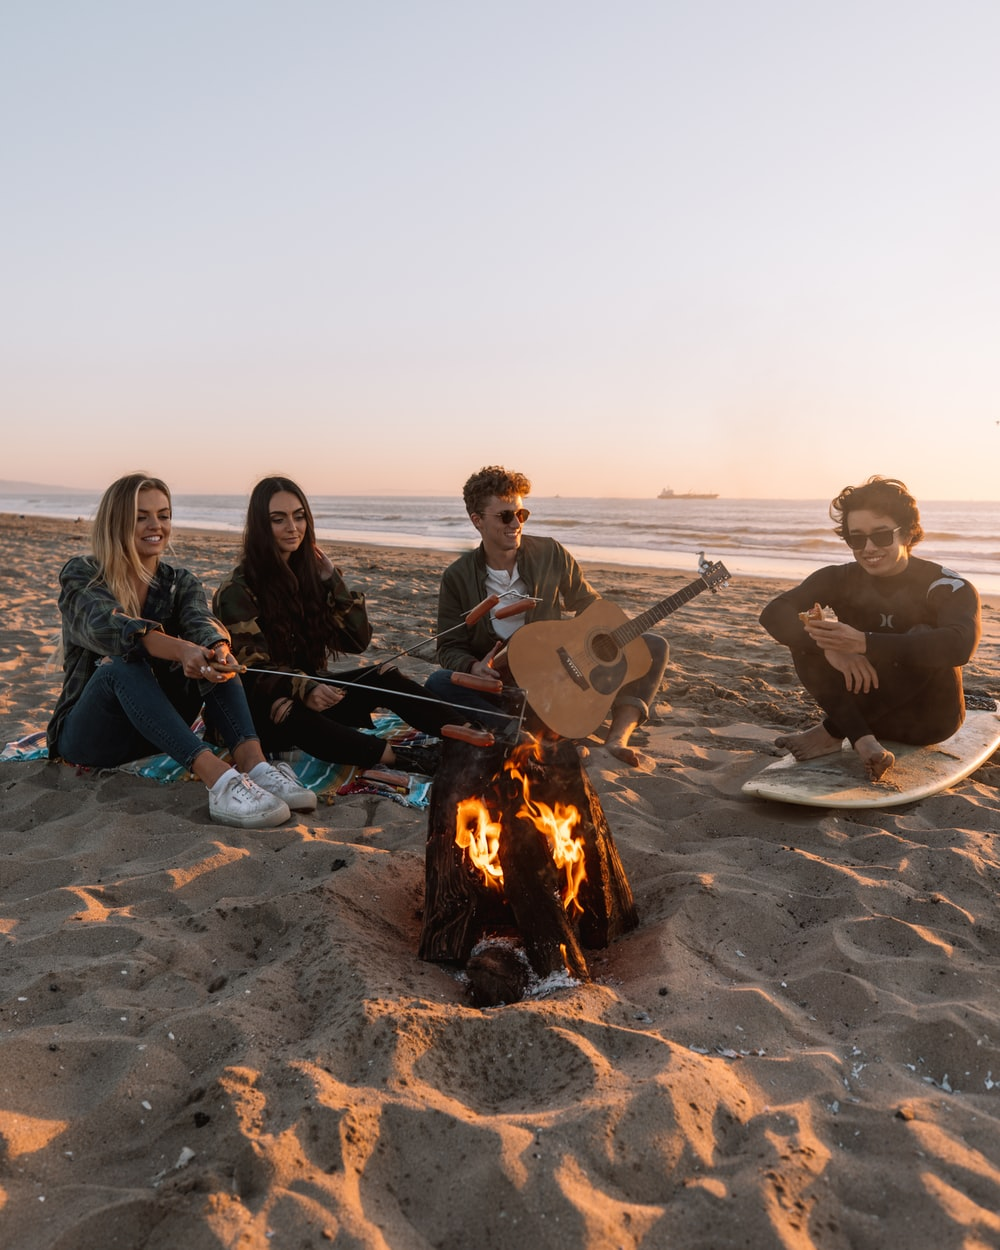 people sitting on sand near bonfire during daytime